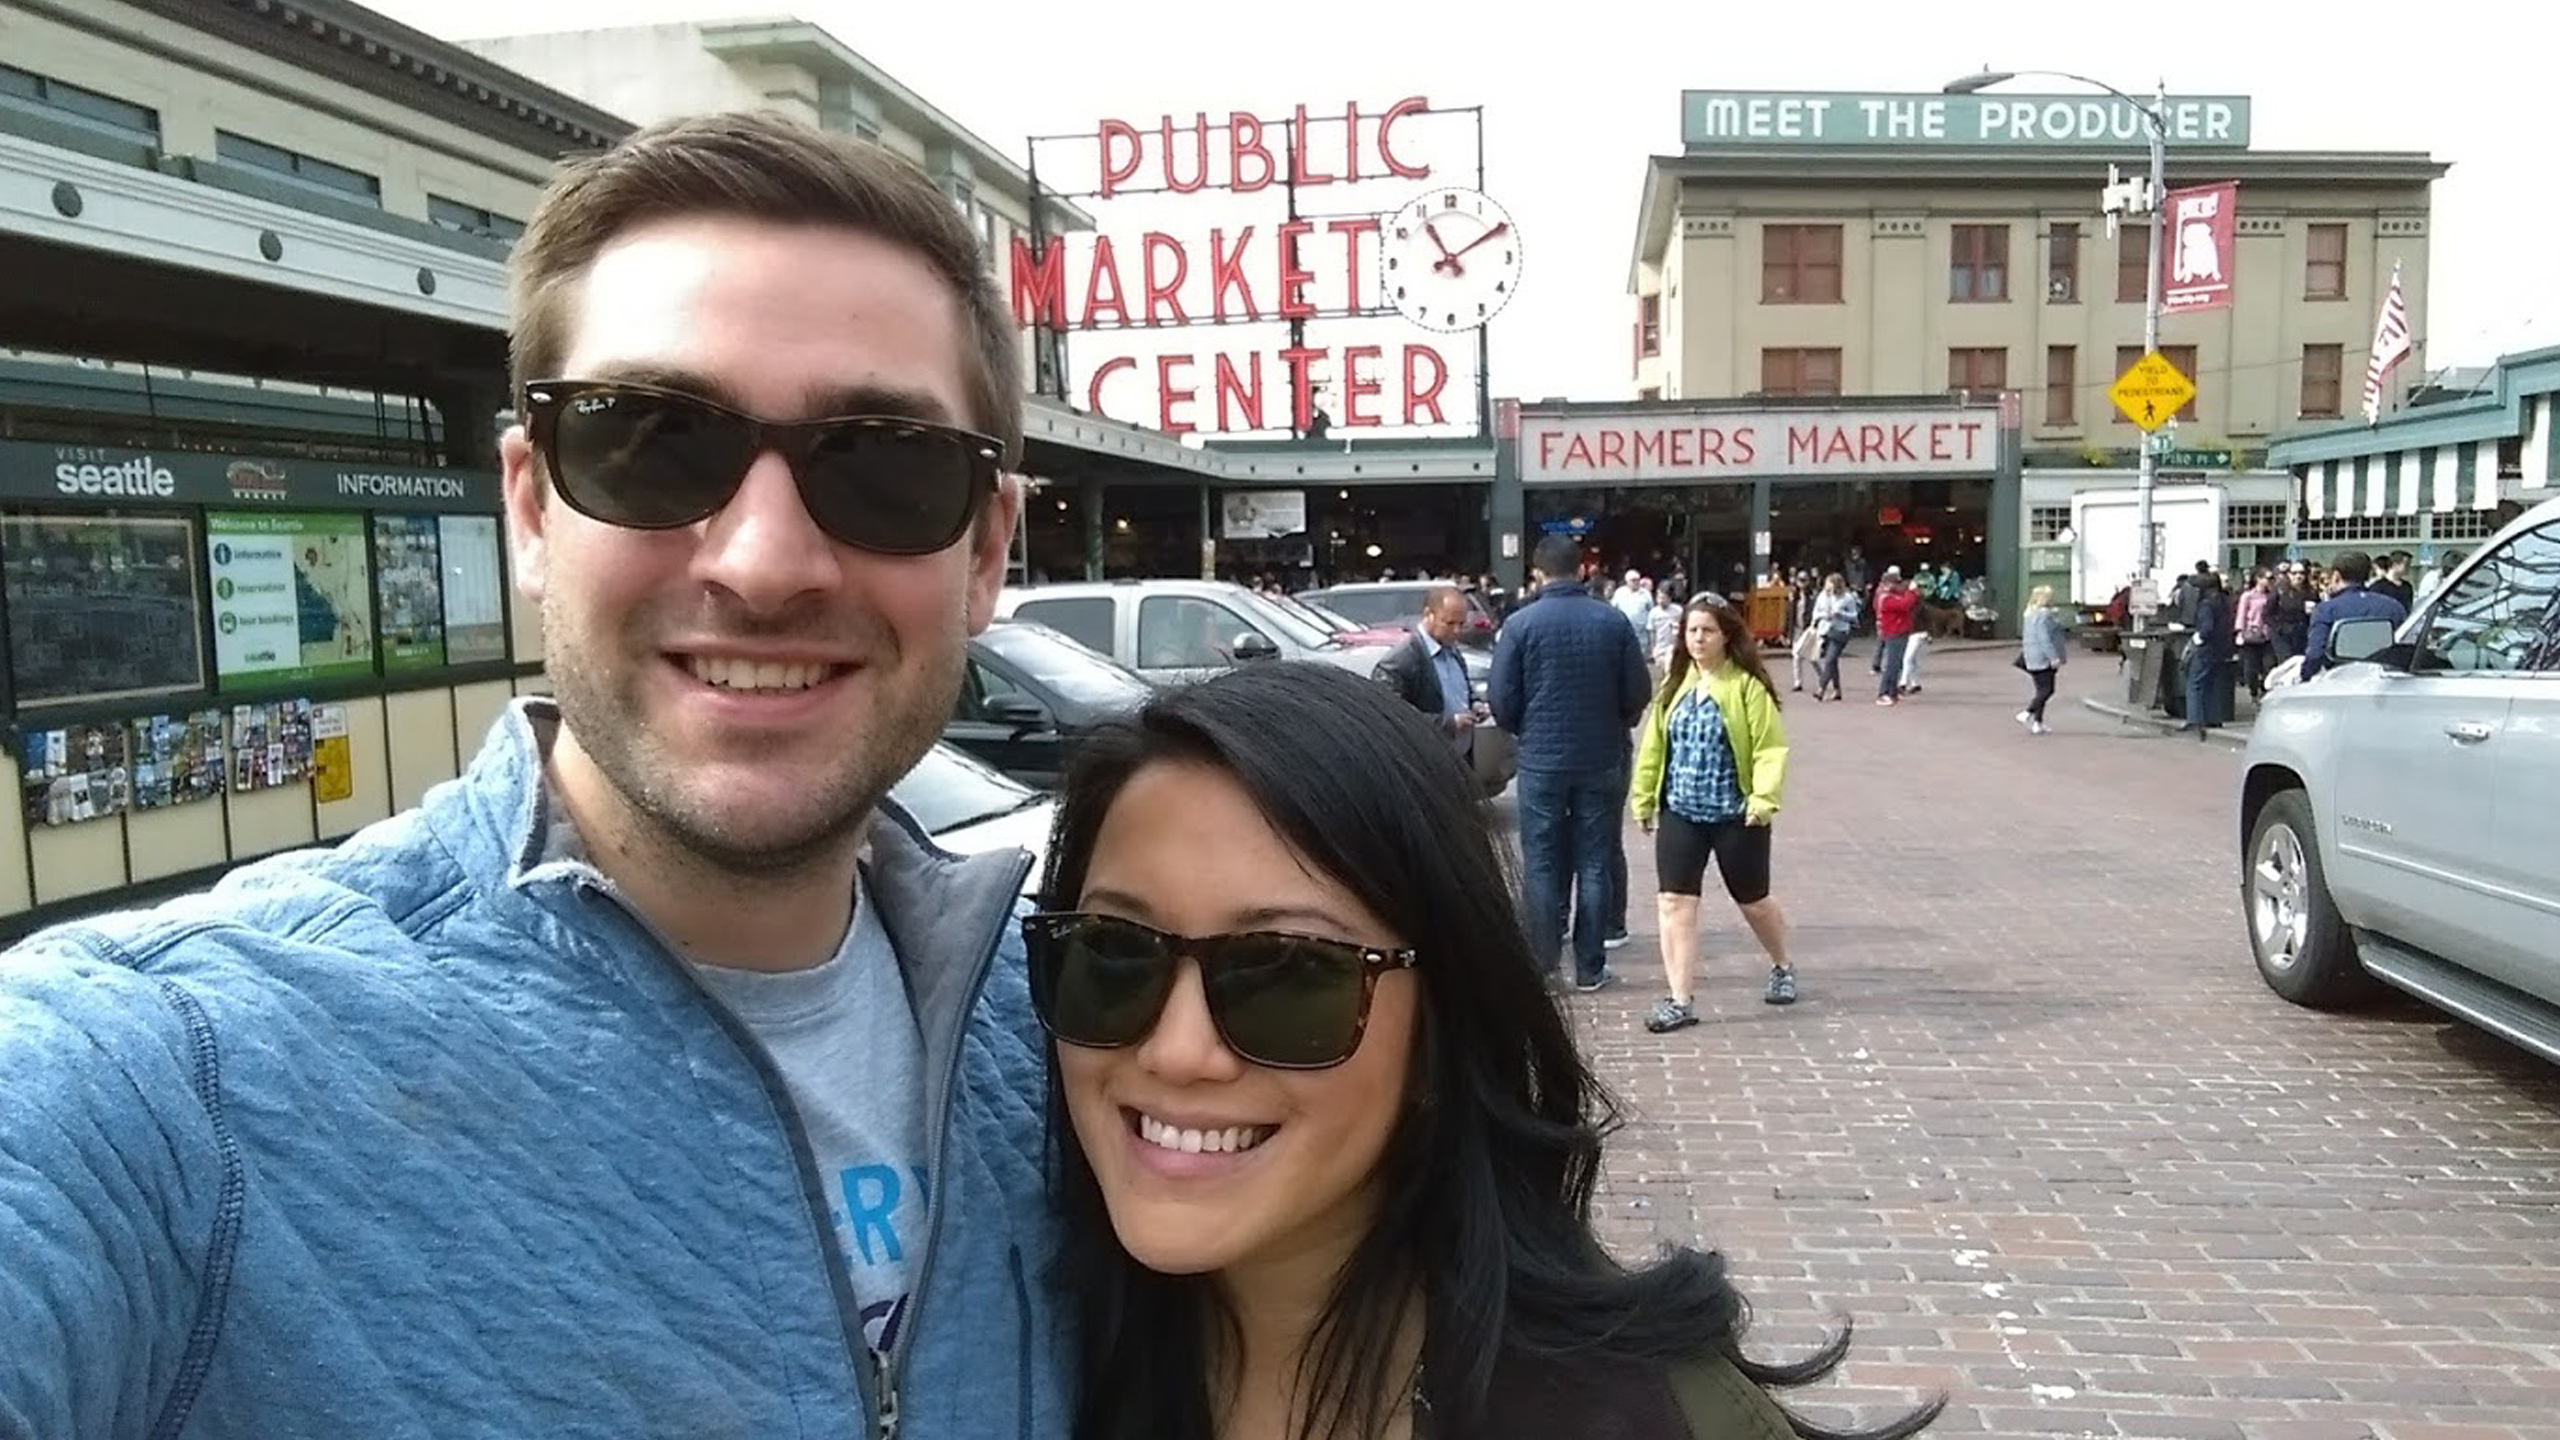 Introducing, Monika Shreves! – Monika and Conor Take a Selfie at Pike Place Market in Seattle